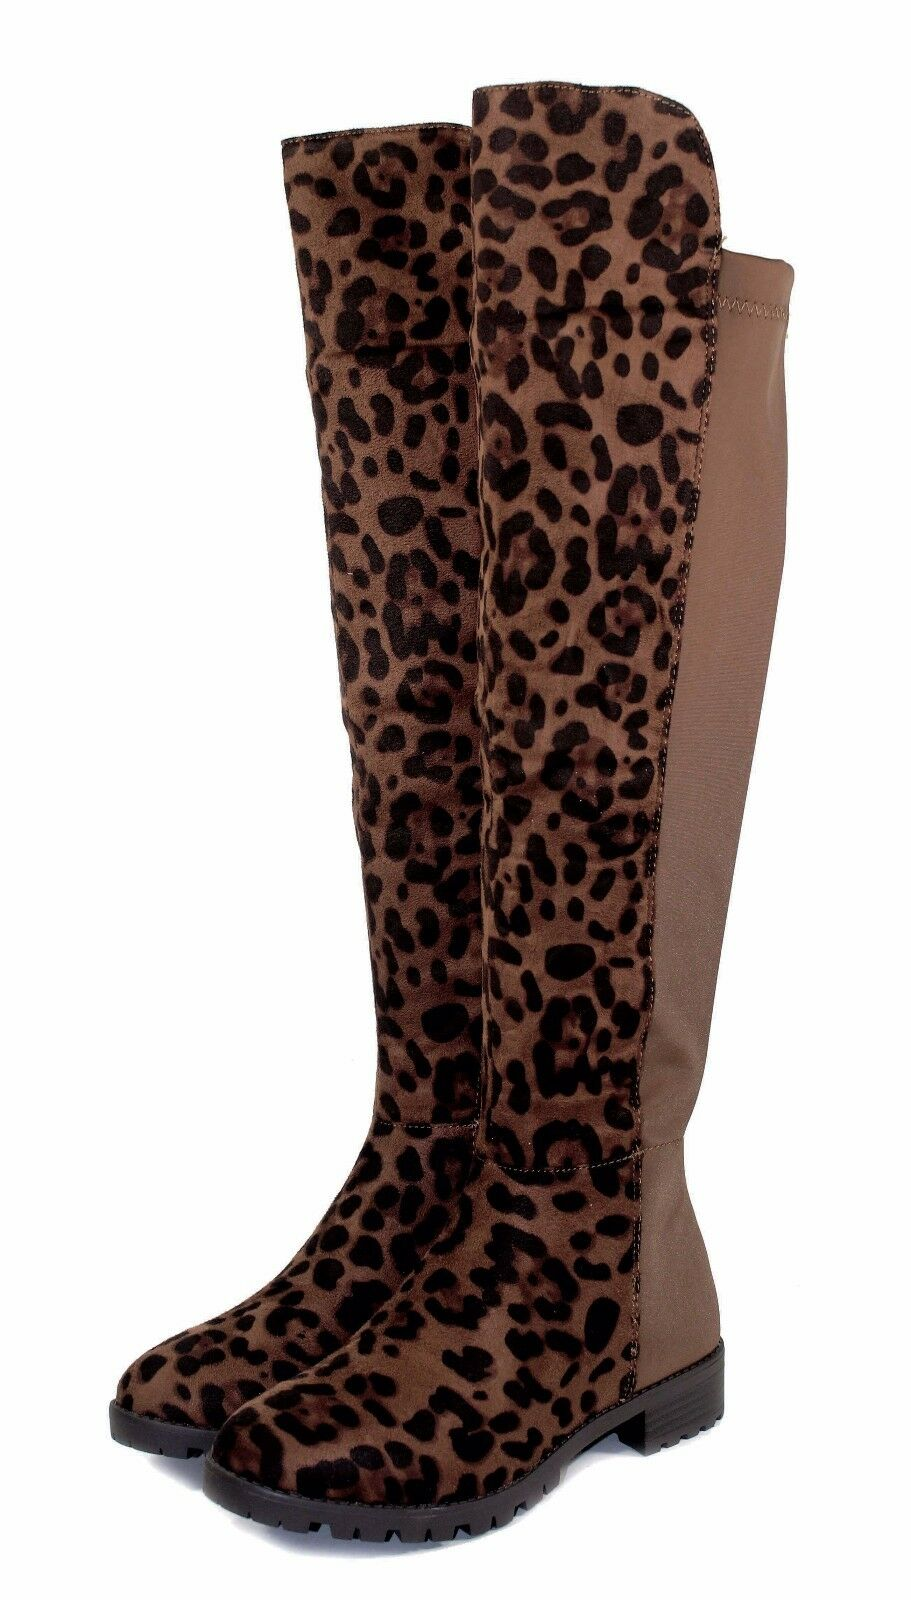 Fifty-50 New Fashion Over Knee Zipper Women's Low Heel Suede Boots Brown Leopard